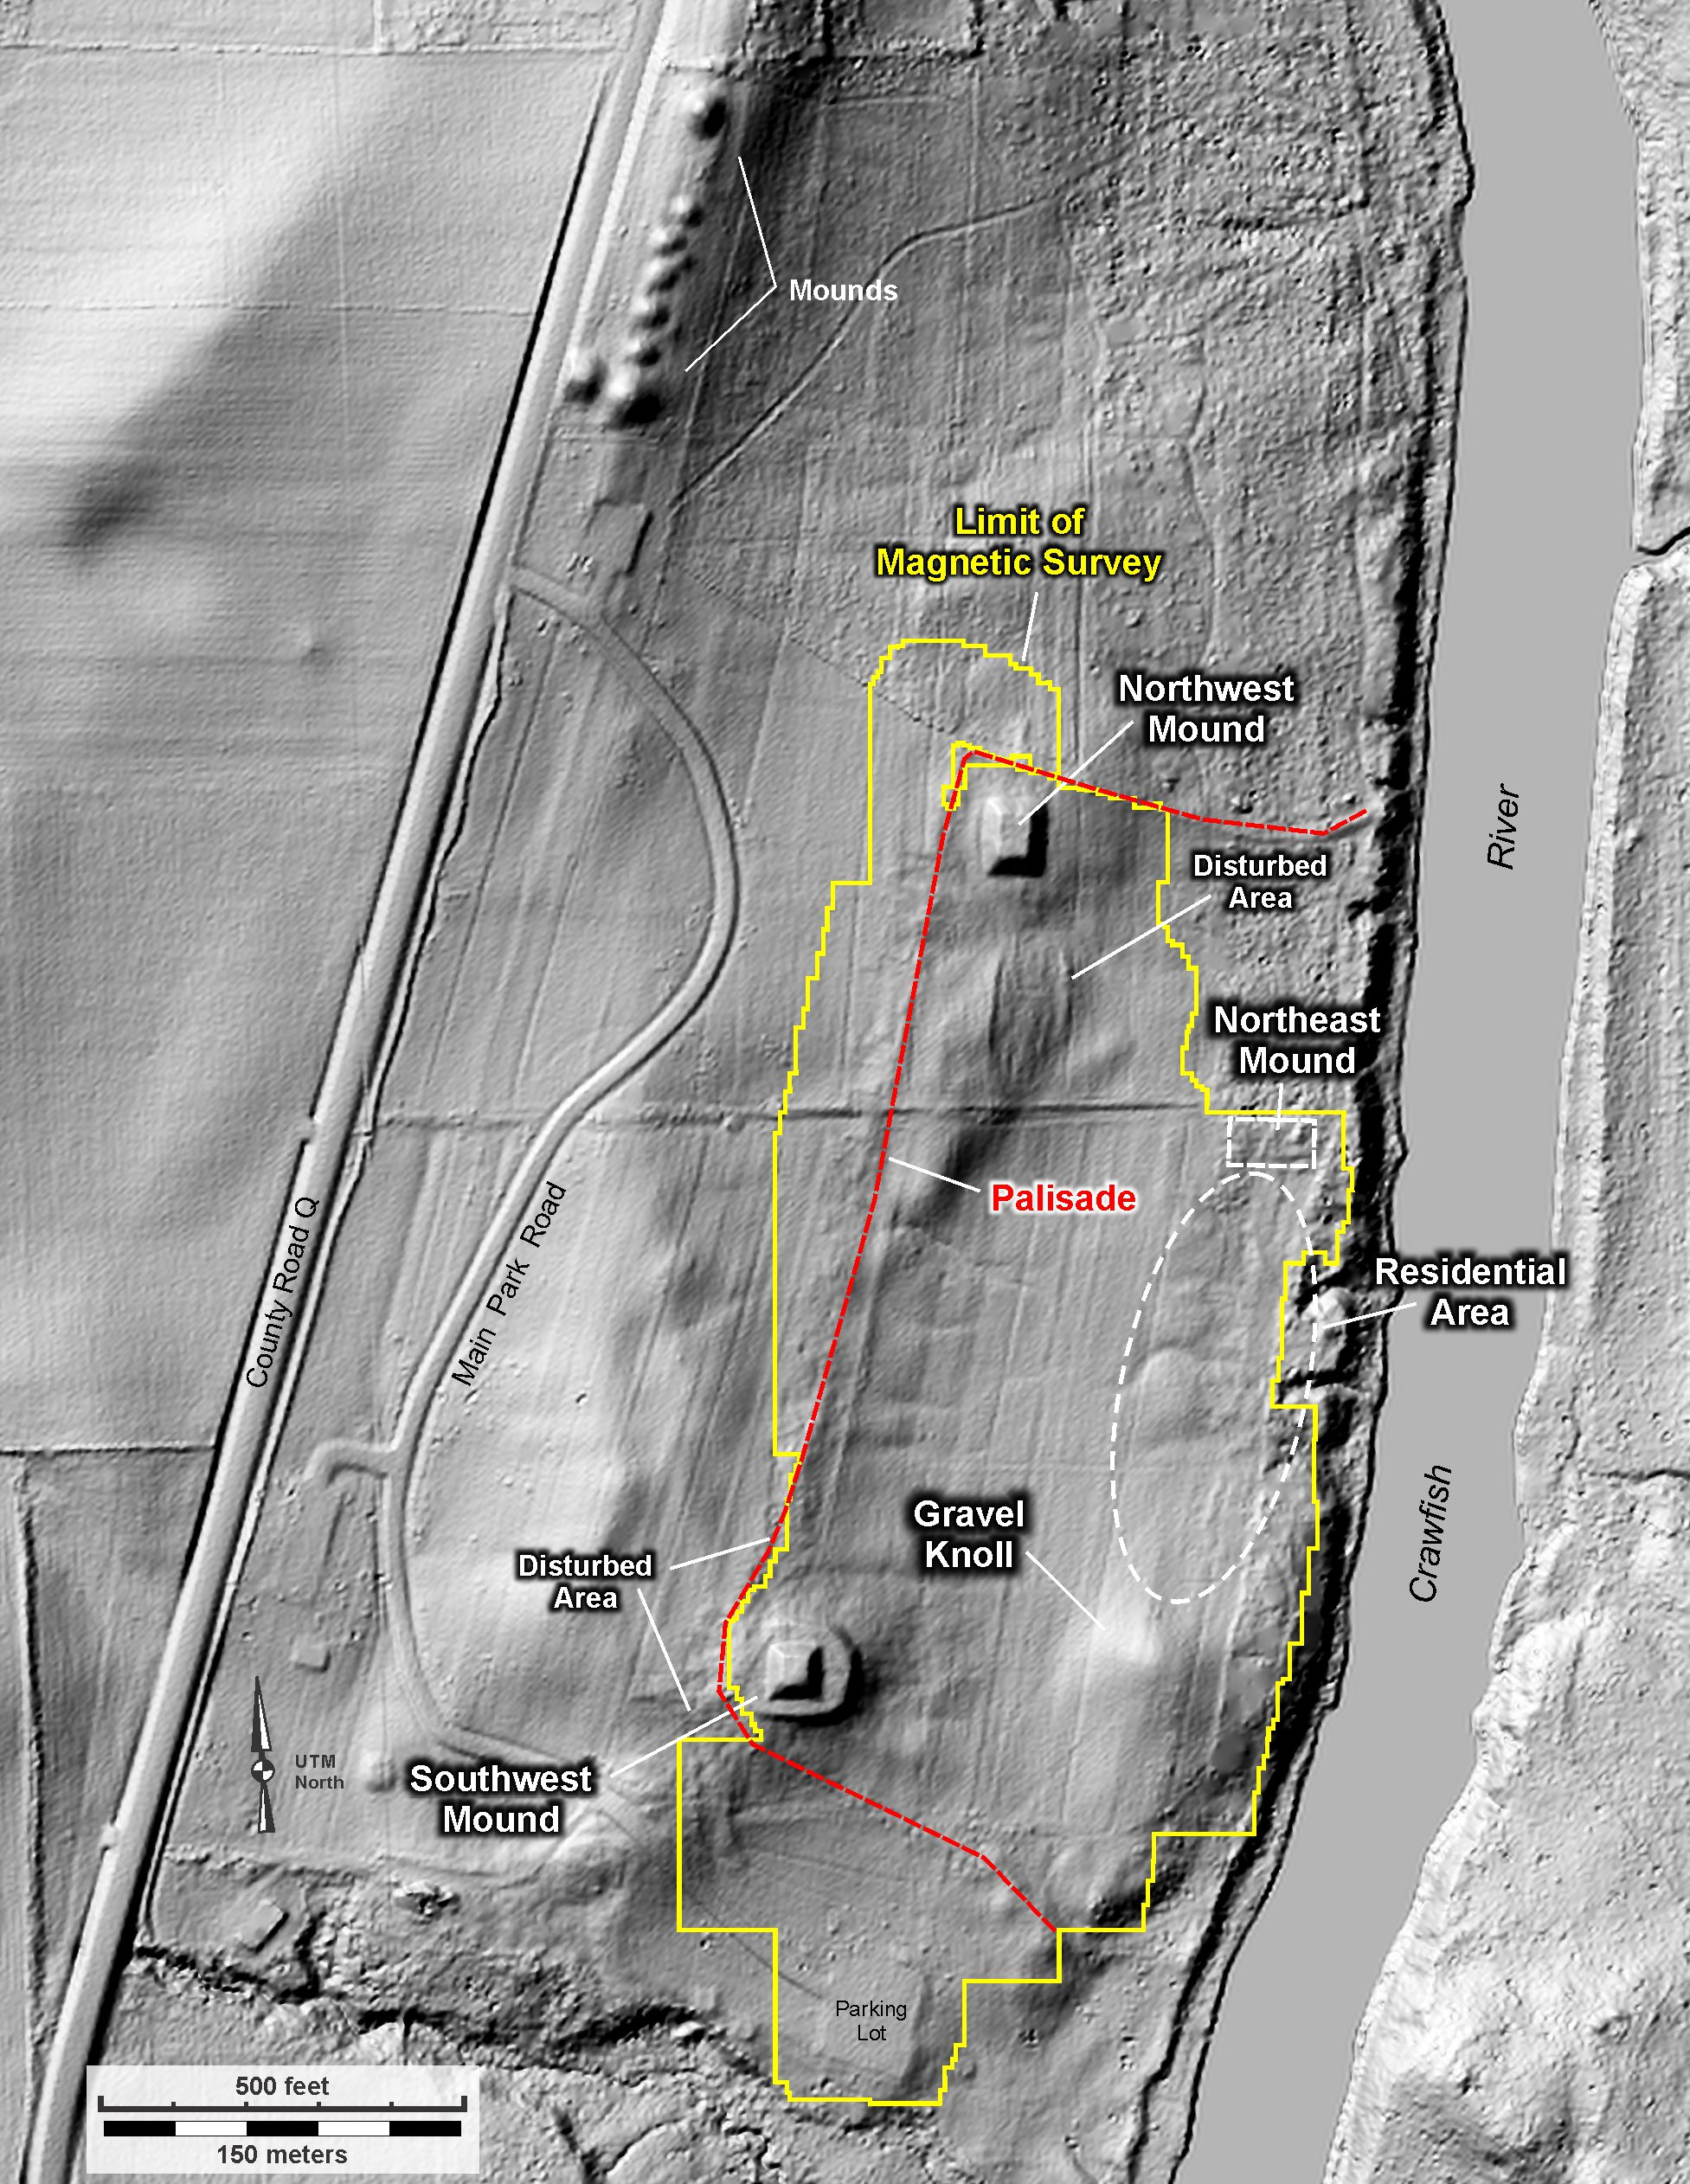 Figure 2. Magnetic survey area at Aztalan State Park shown on a LiDAR-based digital surface model